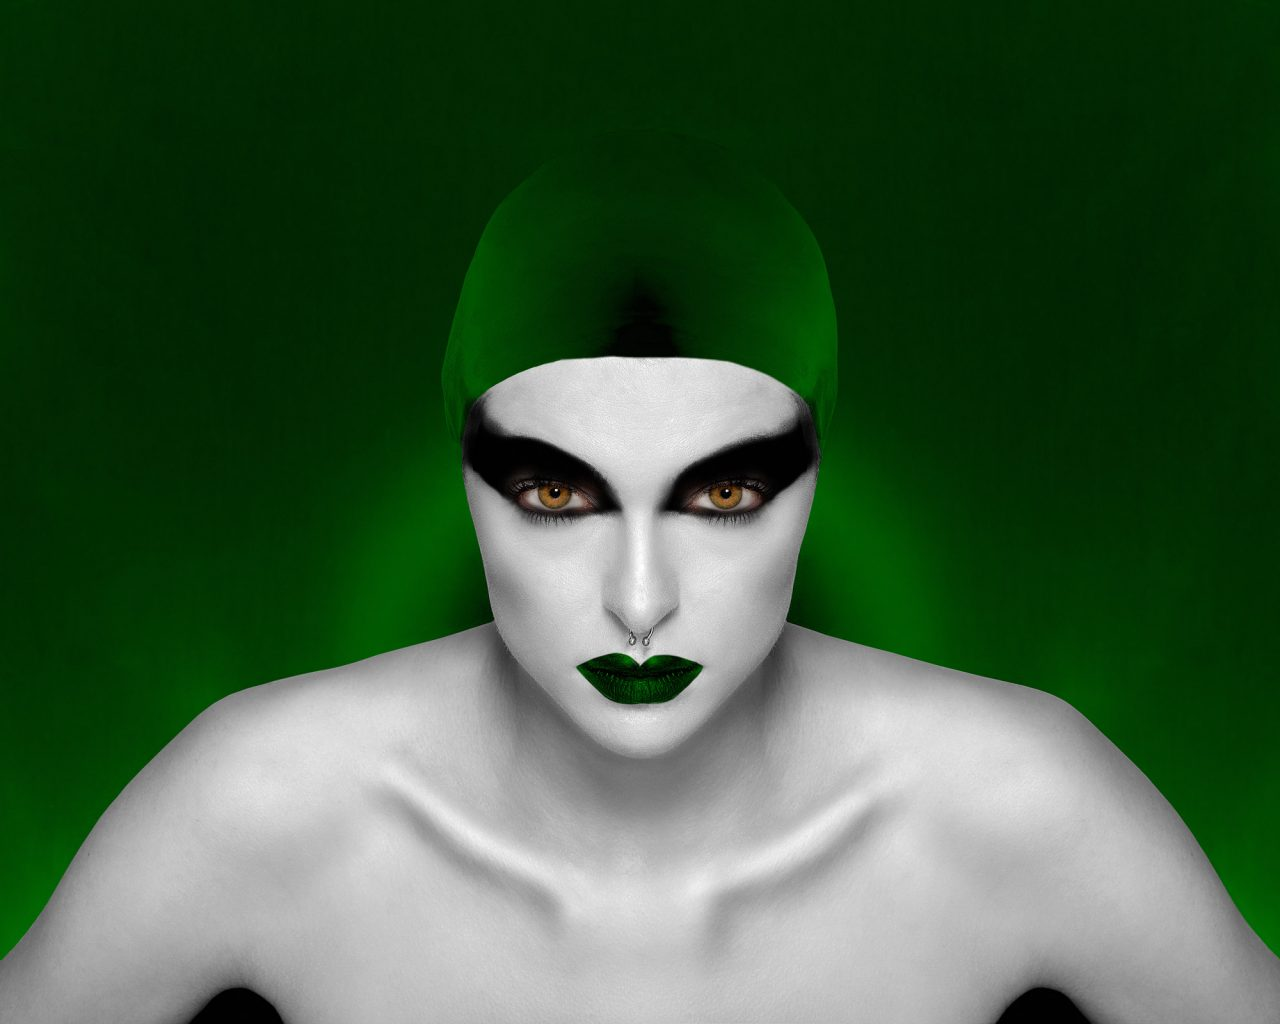 Portrait of a model with dramatic makeup and green swim hat - Gold Award in Commercial Photography by Michael Hayes